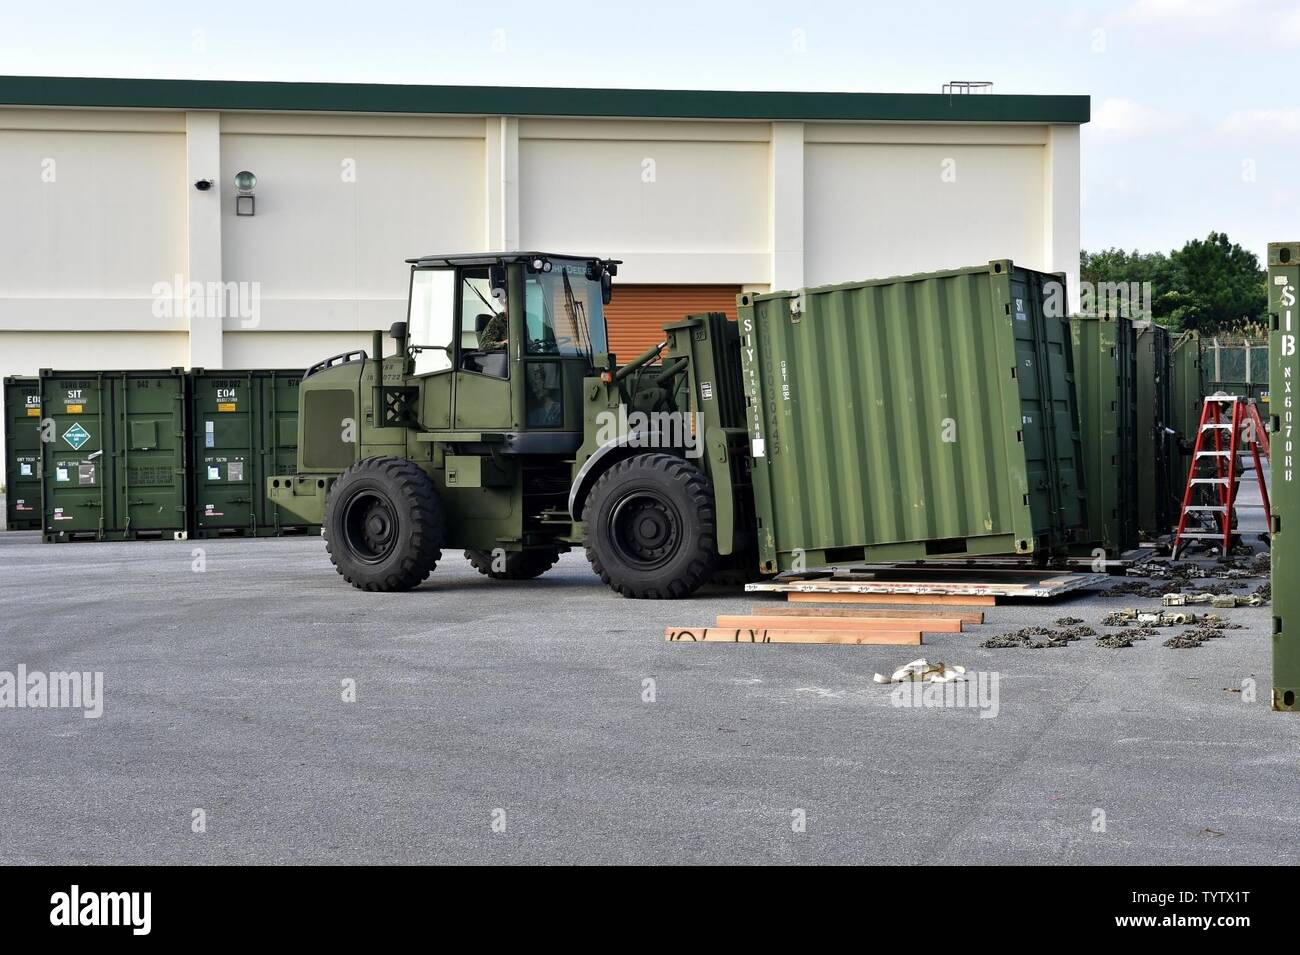 OKINAWA, Japan (Nov. 29, 2016) Seaman Miranda Roudabush, assigned to Naval Mobile Construction Battalion (NMCB) 5, drives a forklift while moving containers onto pallets outside of a warehouse on Camp Shields during an embark exercise. The exercise tests the commands ability to mobilize within 48 hours to react to different types of contingency operations around the world. NMCB 5 is the forward deployed Western Pacific NMCB ready to support Major Combat Operations, Humanitarian Assistance and Disaster Relief operations, and to provide general engineering and civil support to Navy, Marine Corps - Stock Image